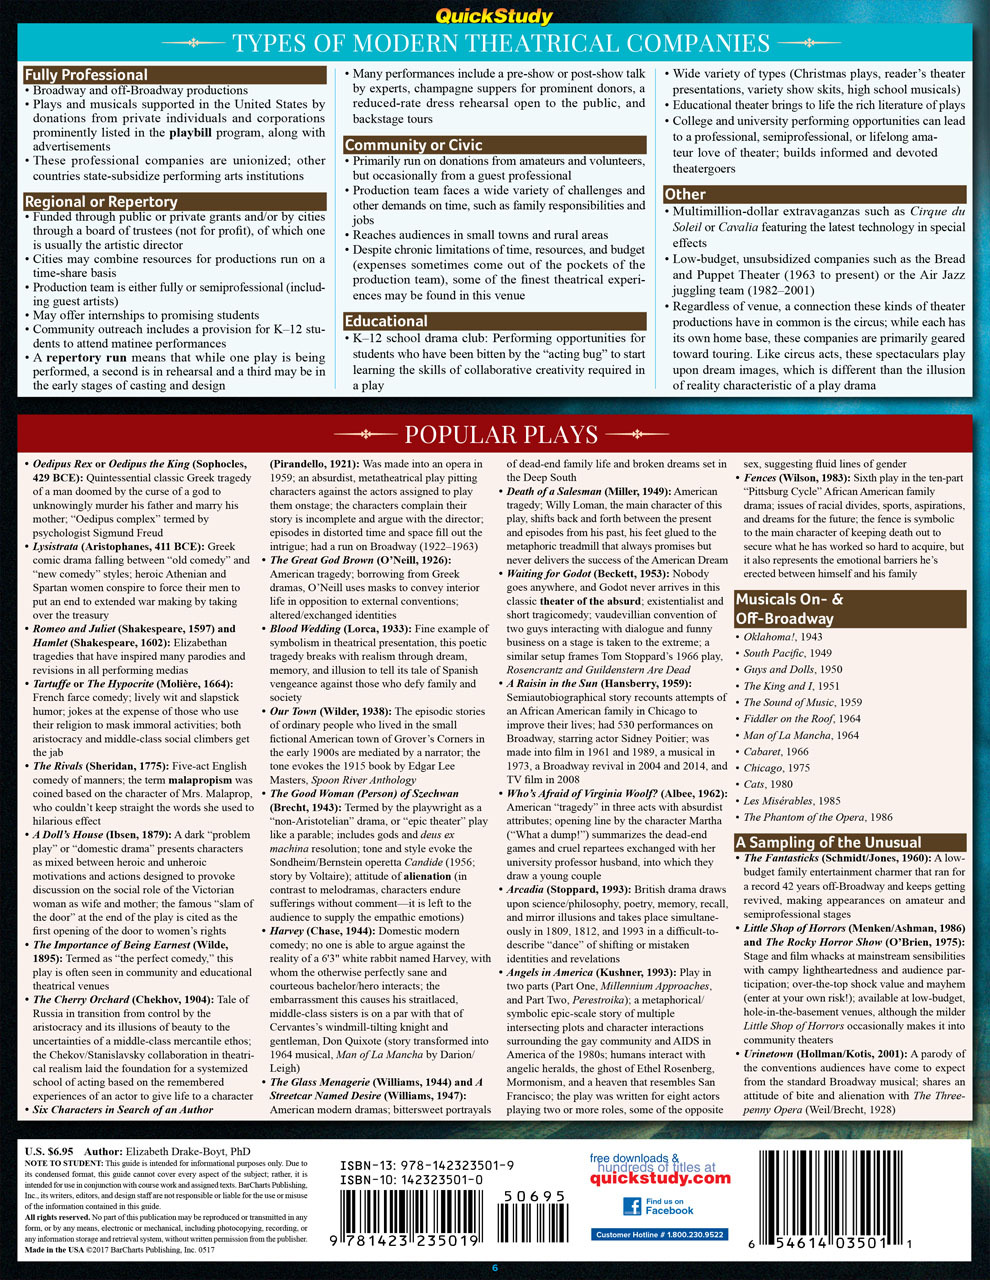 Quick Study QuickStudy Theater Appreciation Laminated Reference Guide BarCharts Publishing Drama Reference Back Image